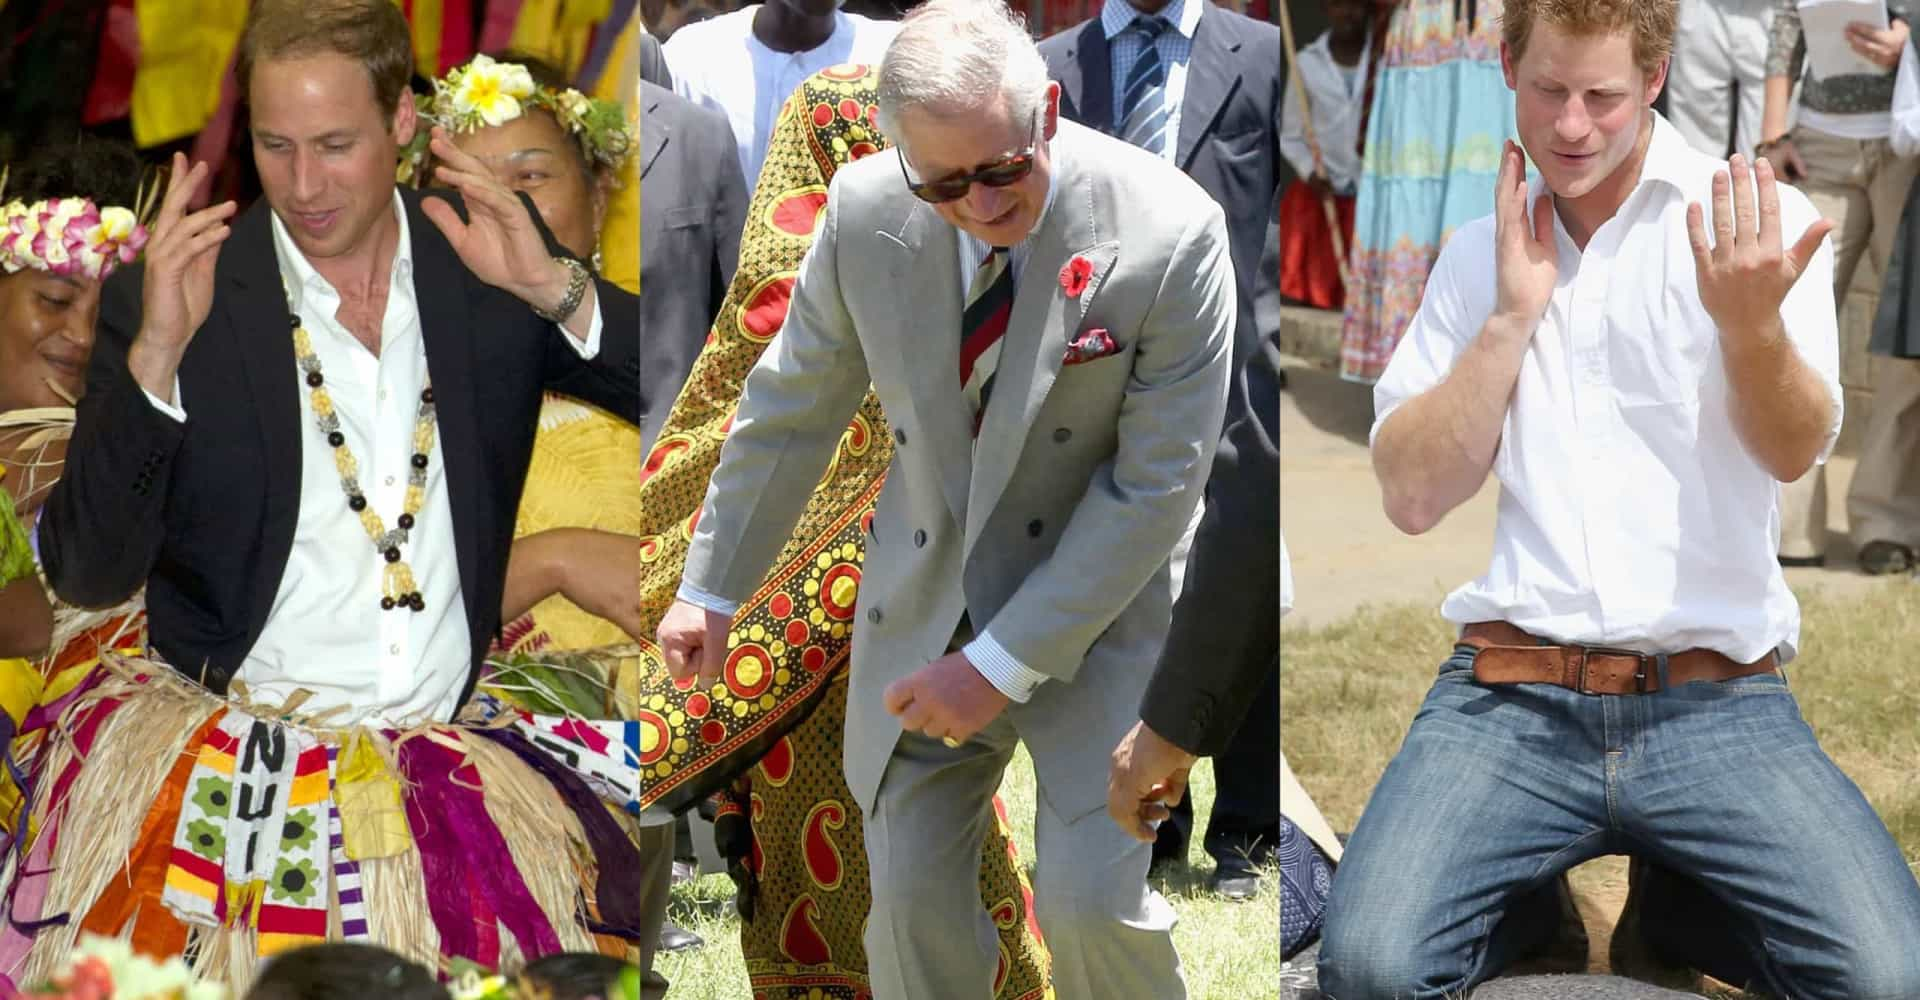 Hilarious photos of royals getting their groove on